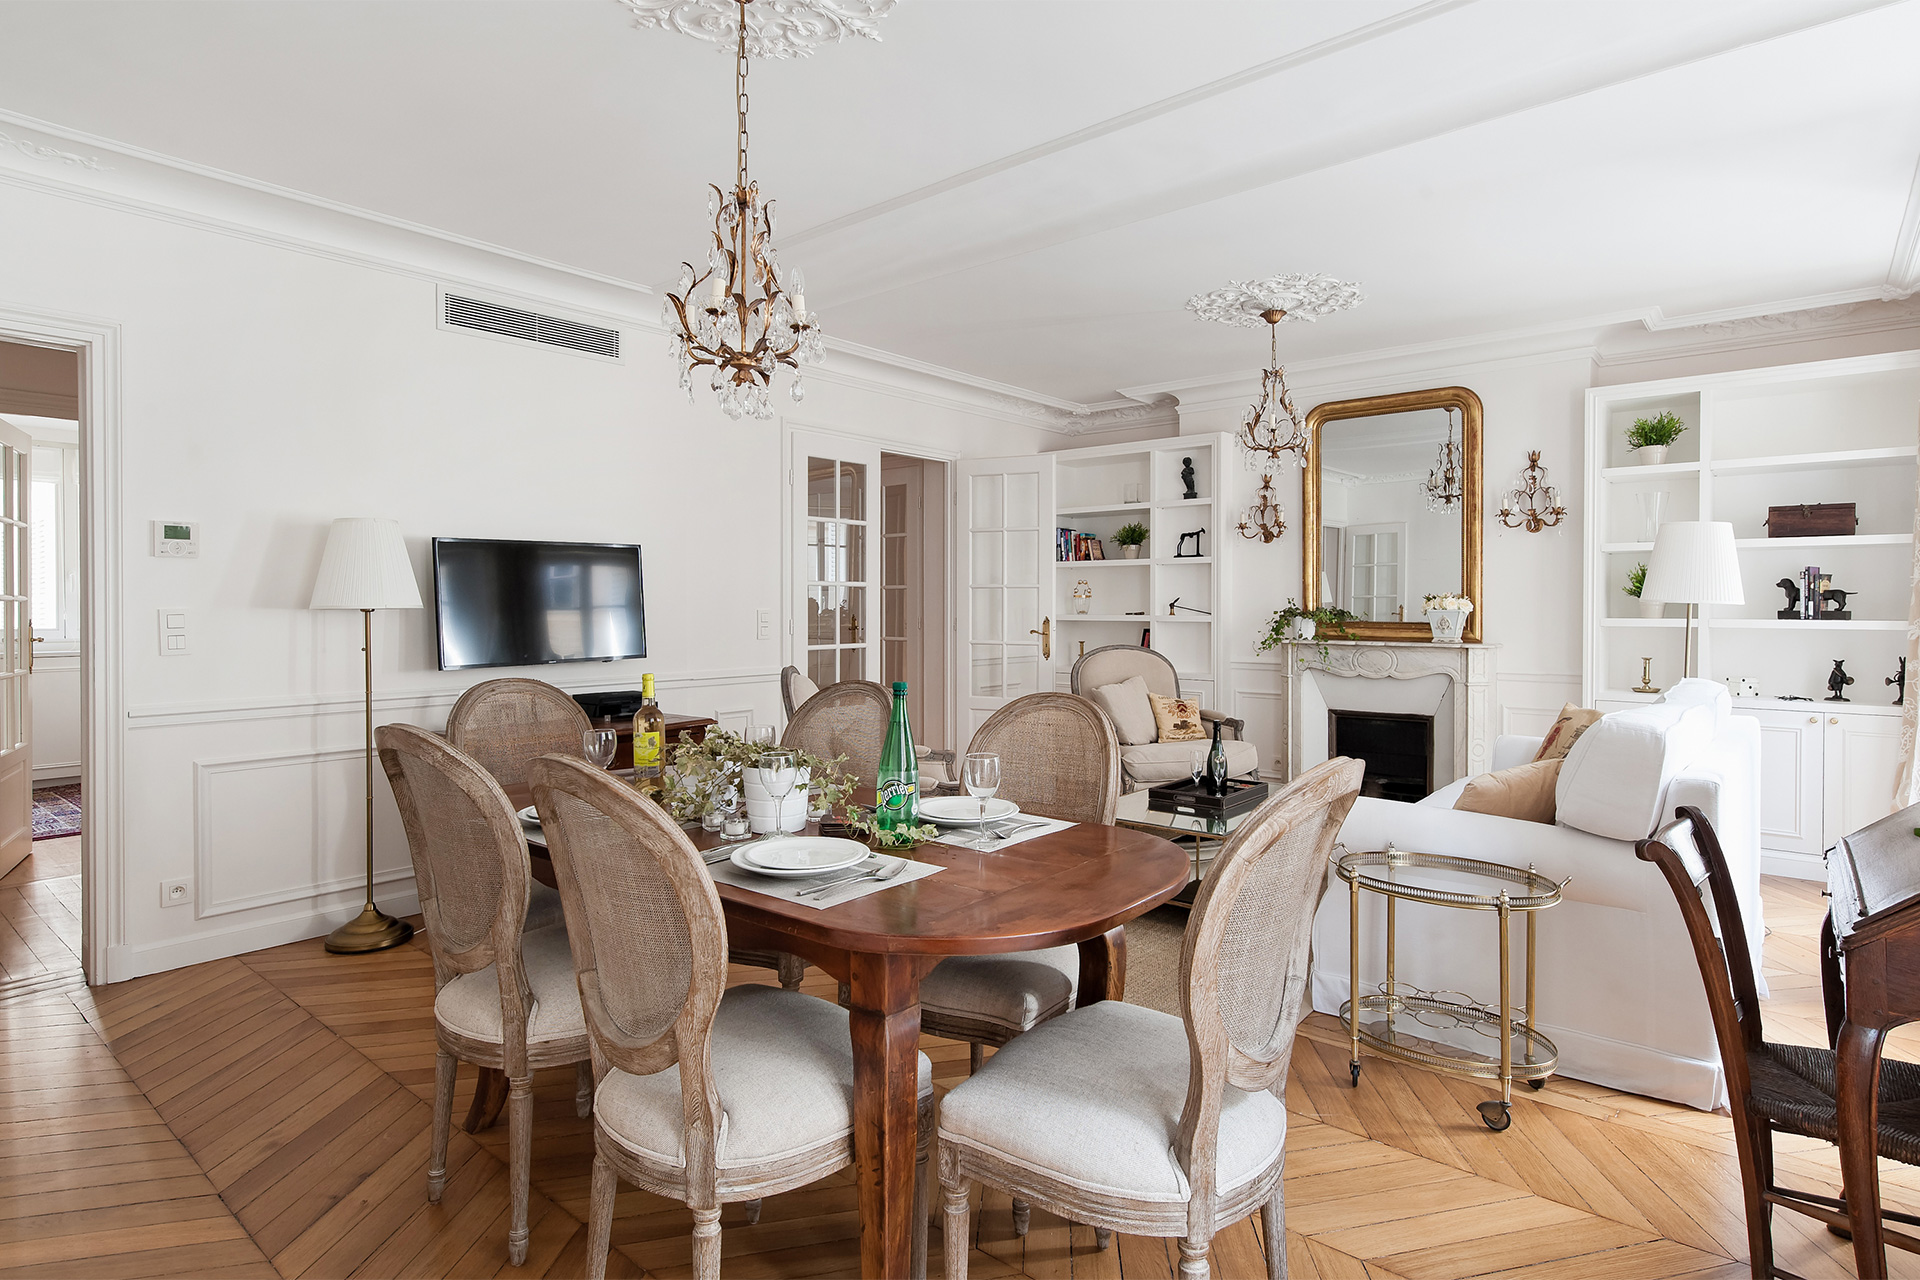 Living and dining areas are flooded with natural sunlight in the Montagny vacation rental